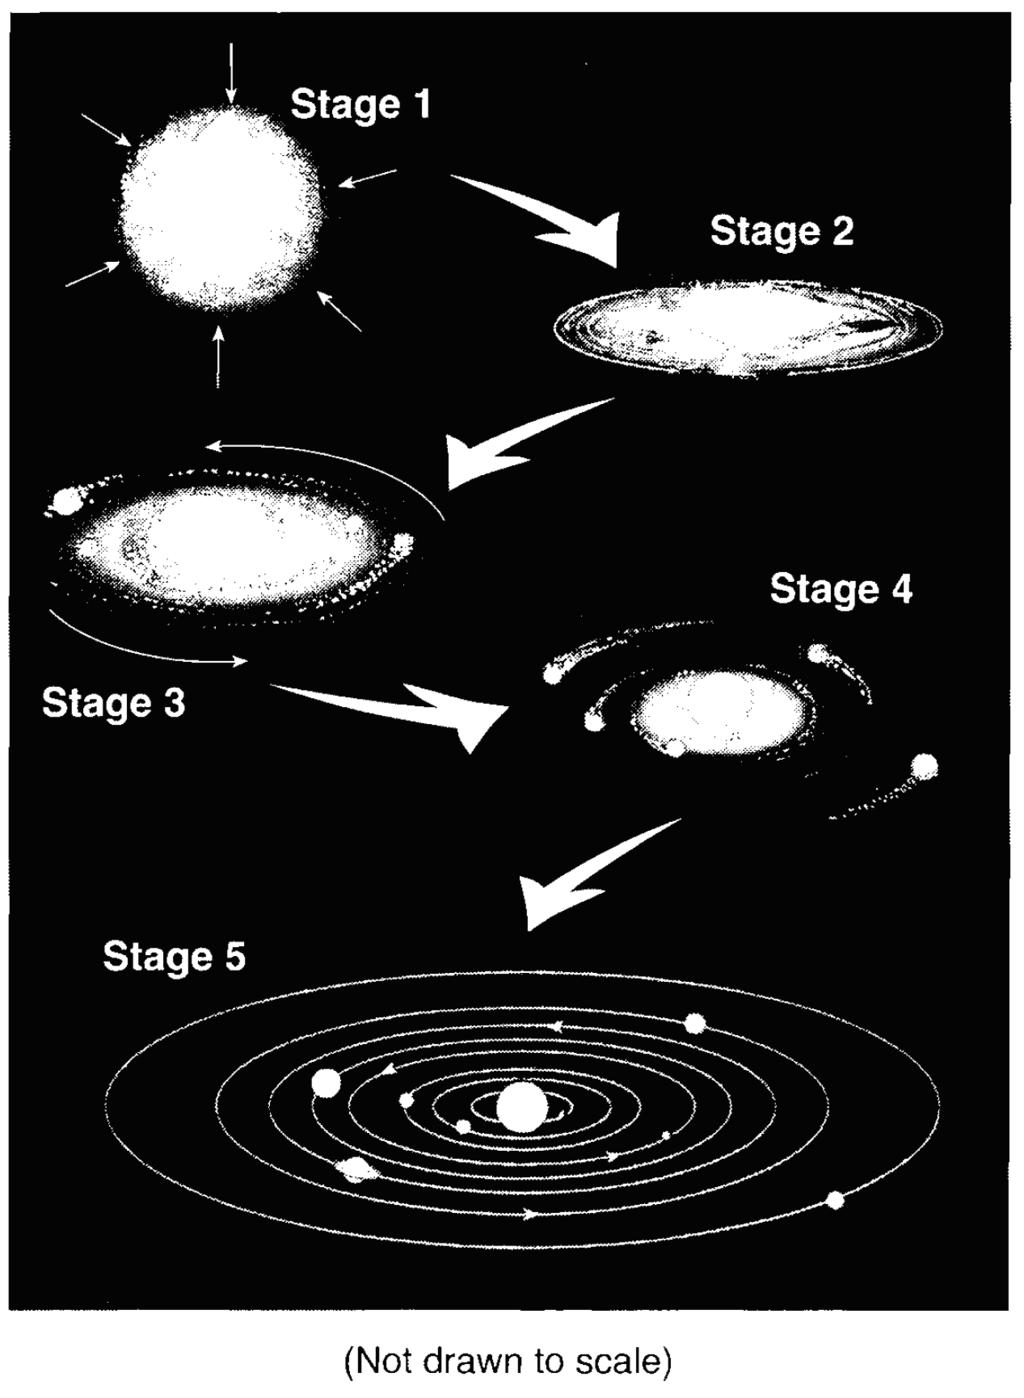 Base your answers to questions 32 through 34 on the diagram below. The diagram represents the inferred stages in the formation of our solar system. Stage 1 shows a contracting gas cloud.